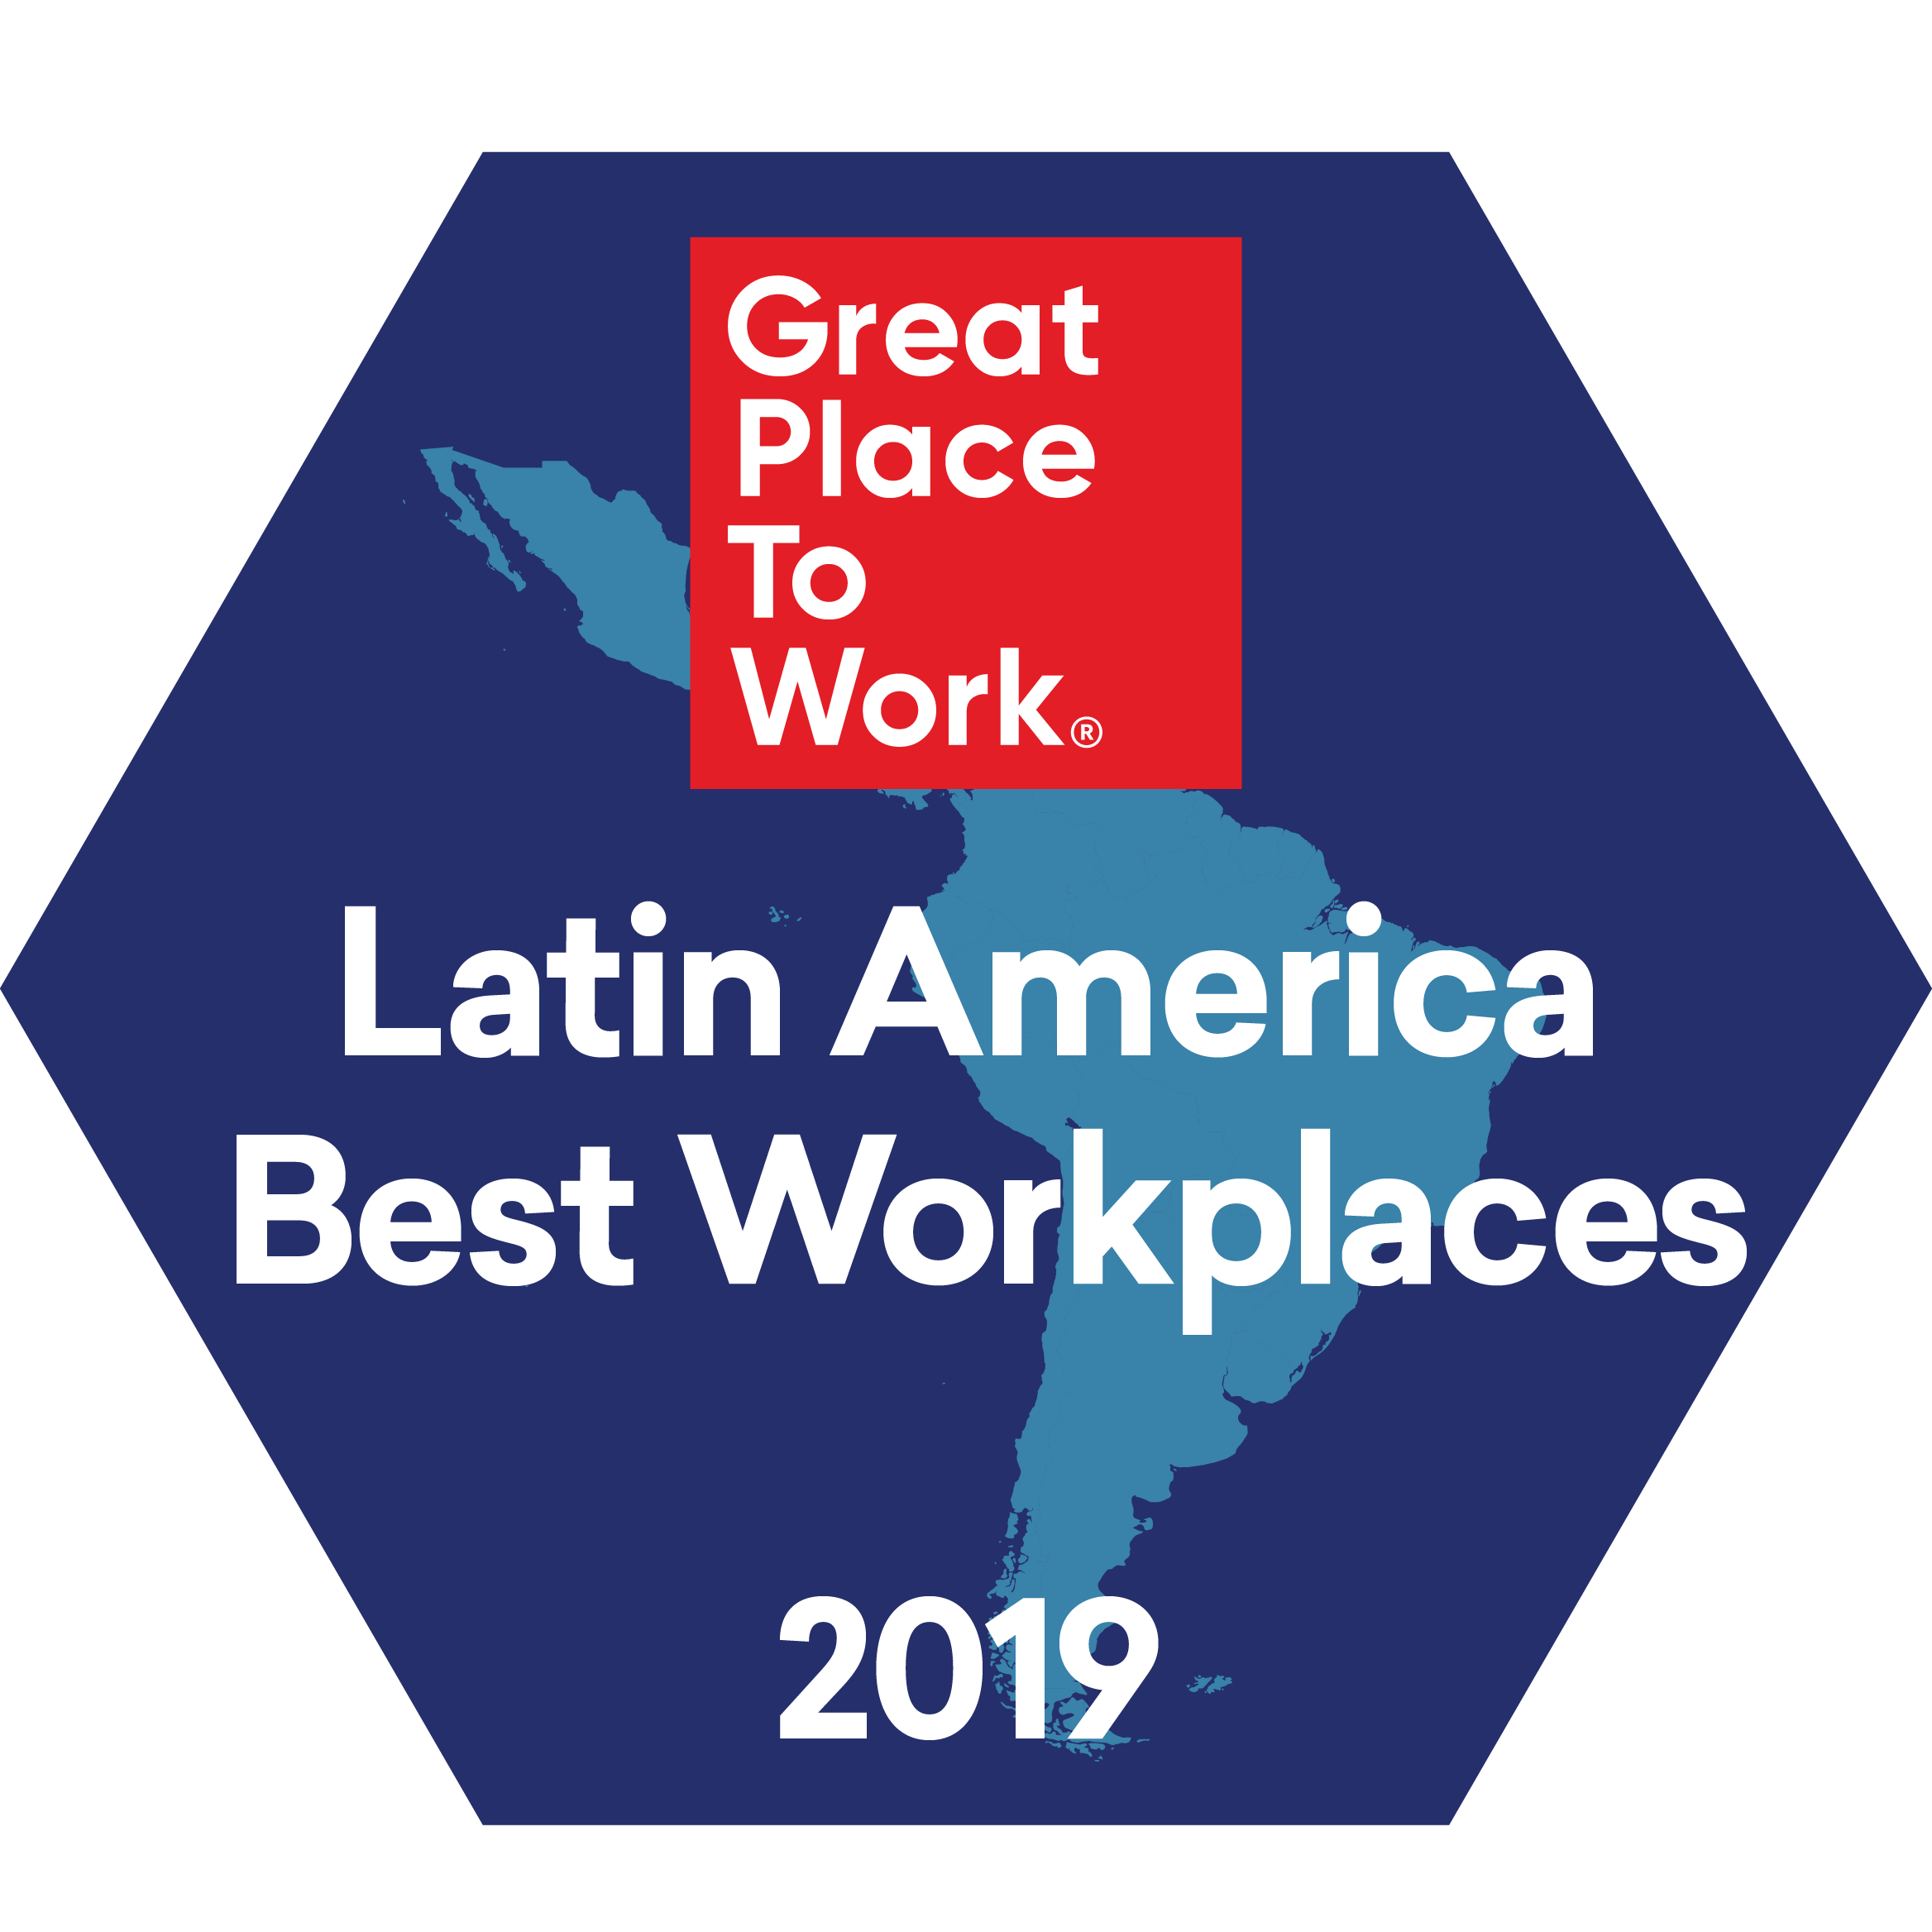 Best Workplaces in Latin America 2019